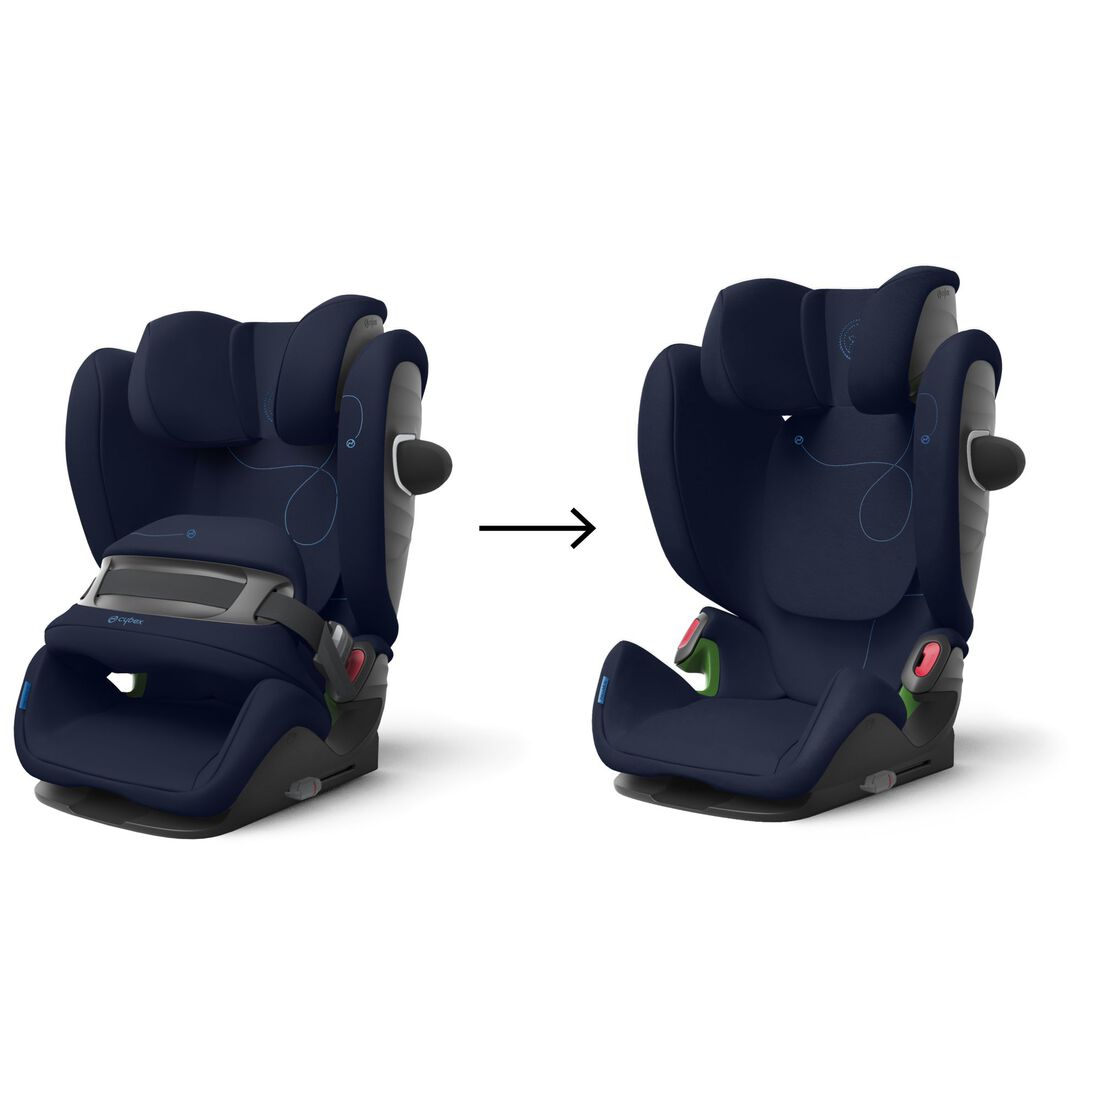 CYBEX Pallas G i-Size - Navy Blue in Navy Blue large image number 6